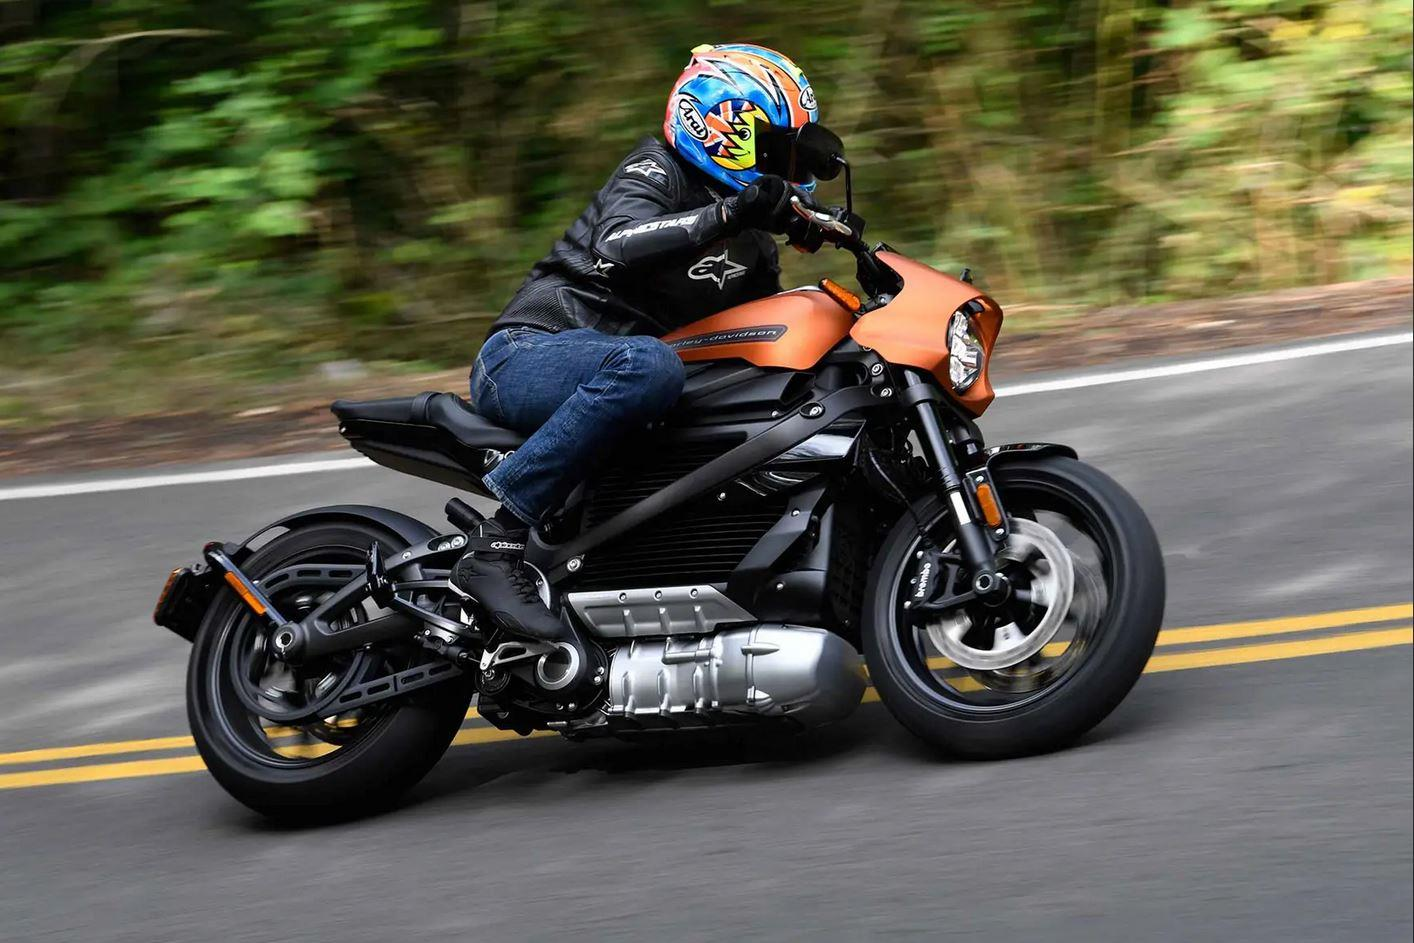 Michael Neeves riding the Harley-Davidson Livewire